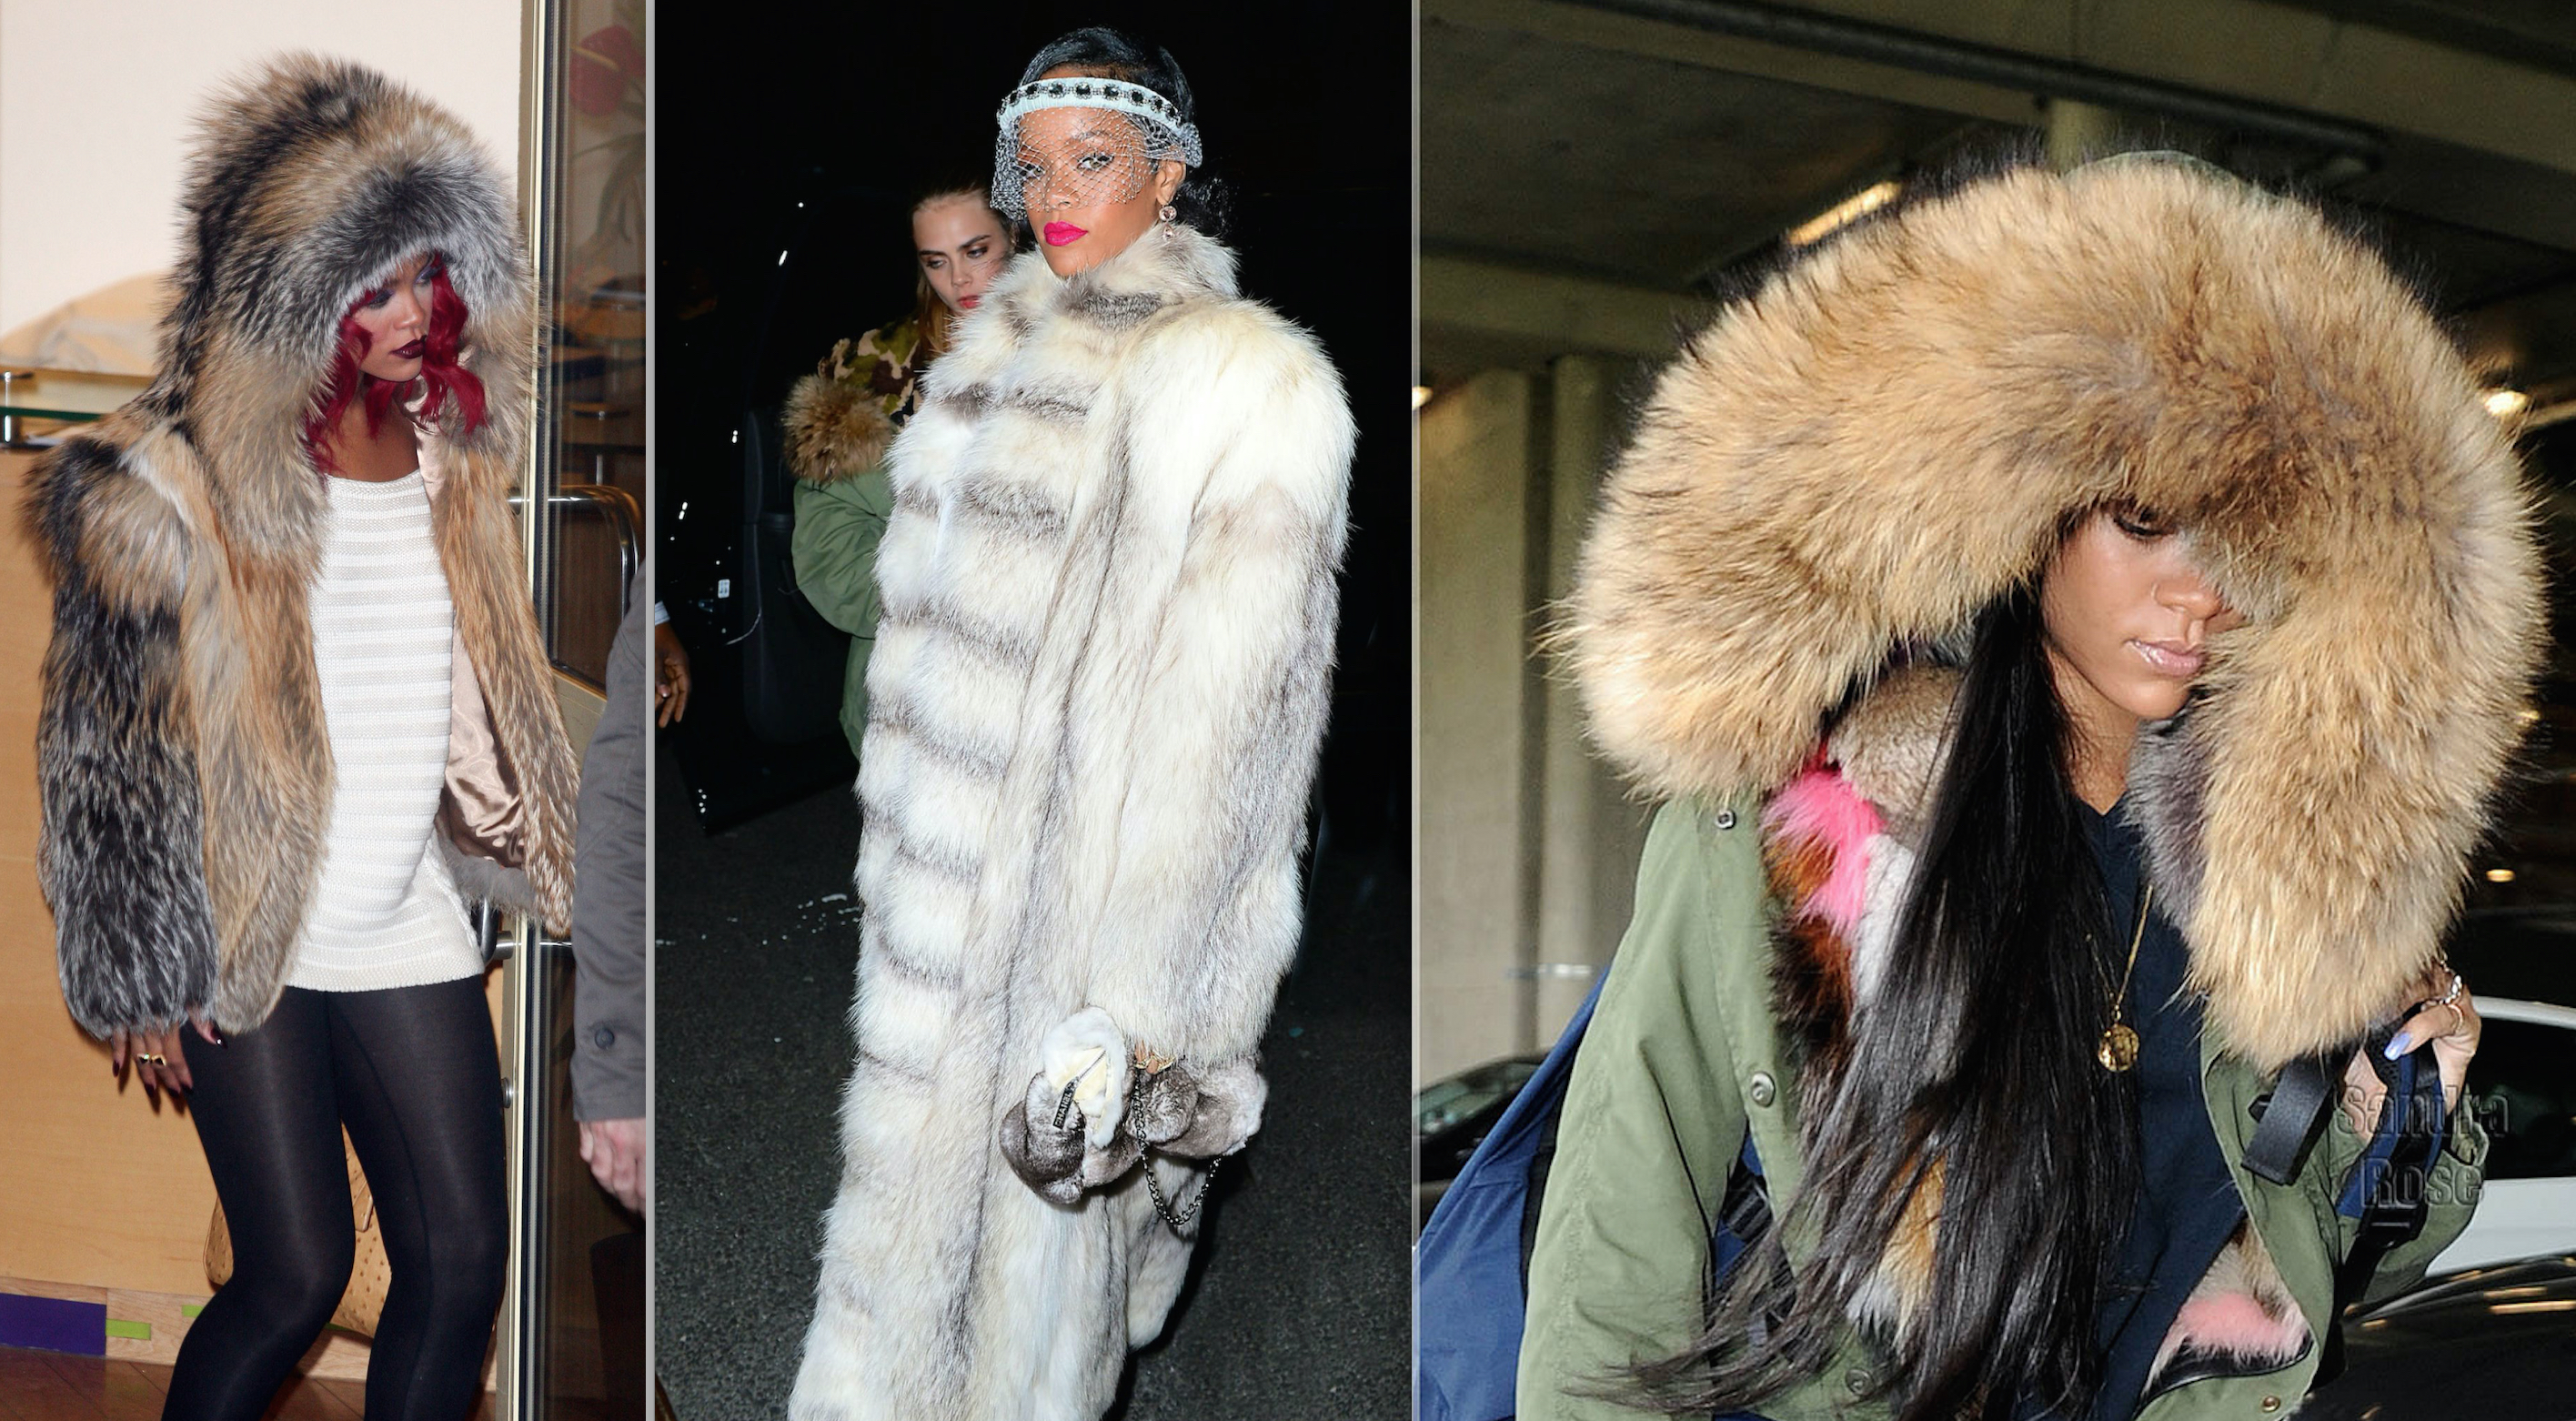 Canada Goose montebello parka outlet 2016 - Anti-Fur Activists Disrupt Rihanna in NYC - Their Turn